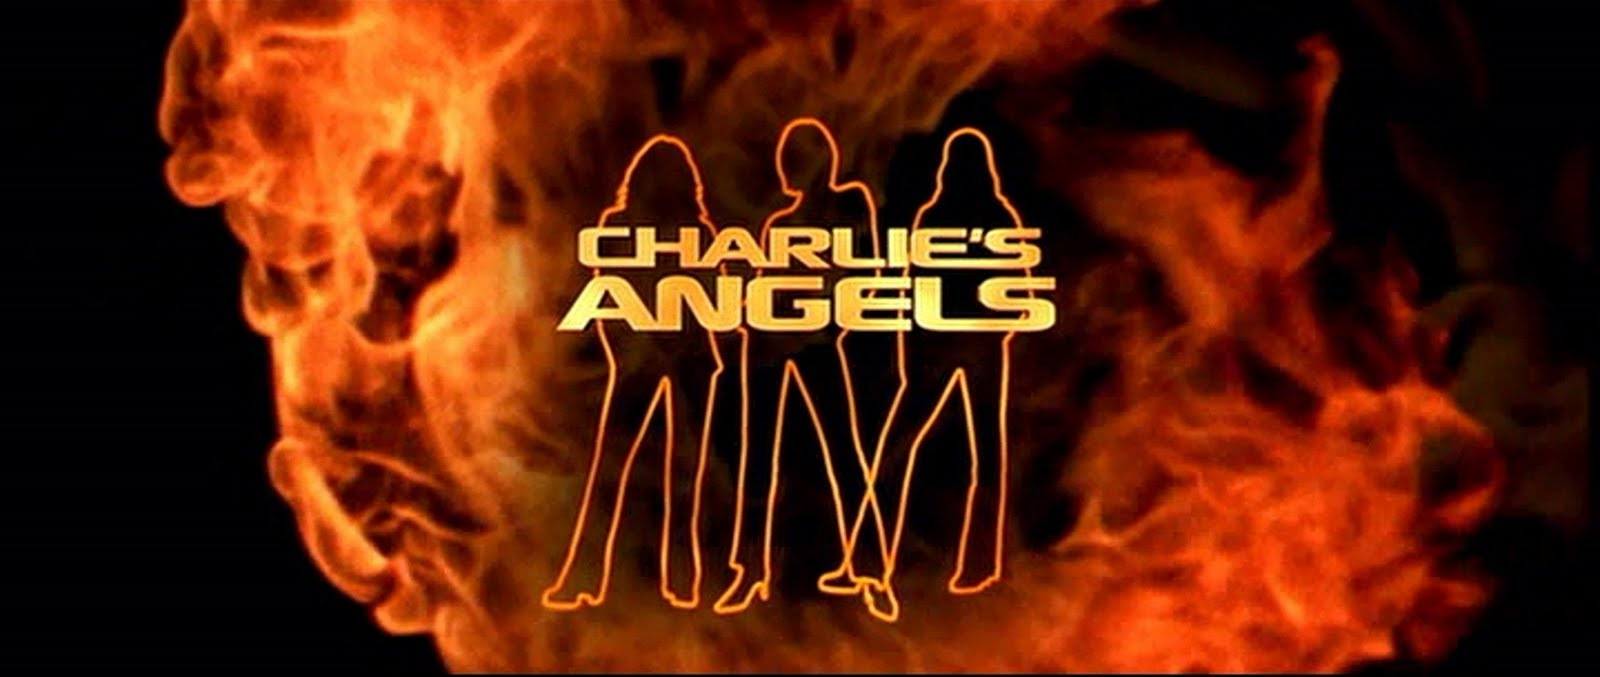 Movie Locations and More: Charlie's Angels (2000) Charlies Angels 2000